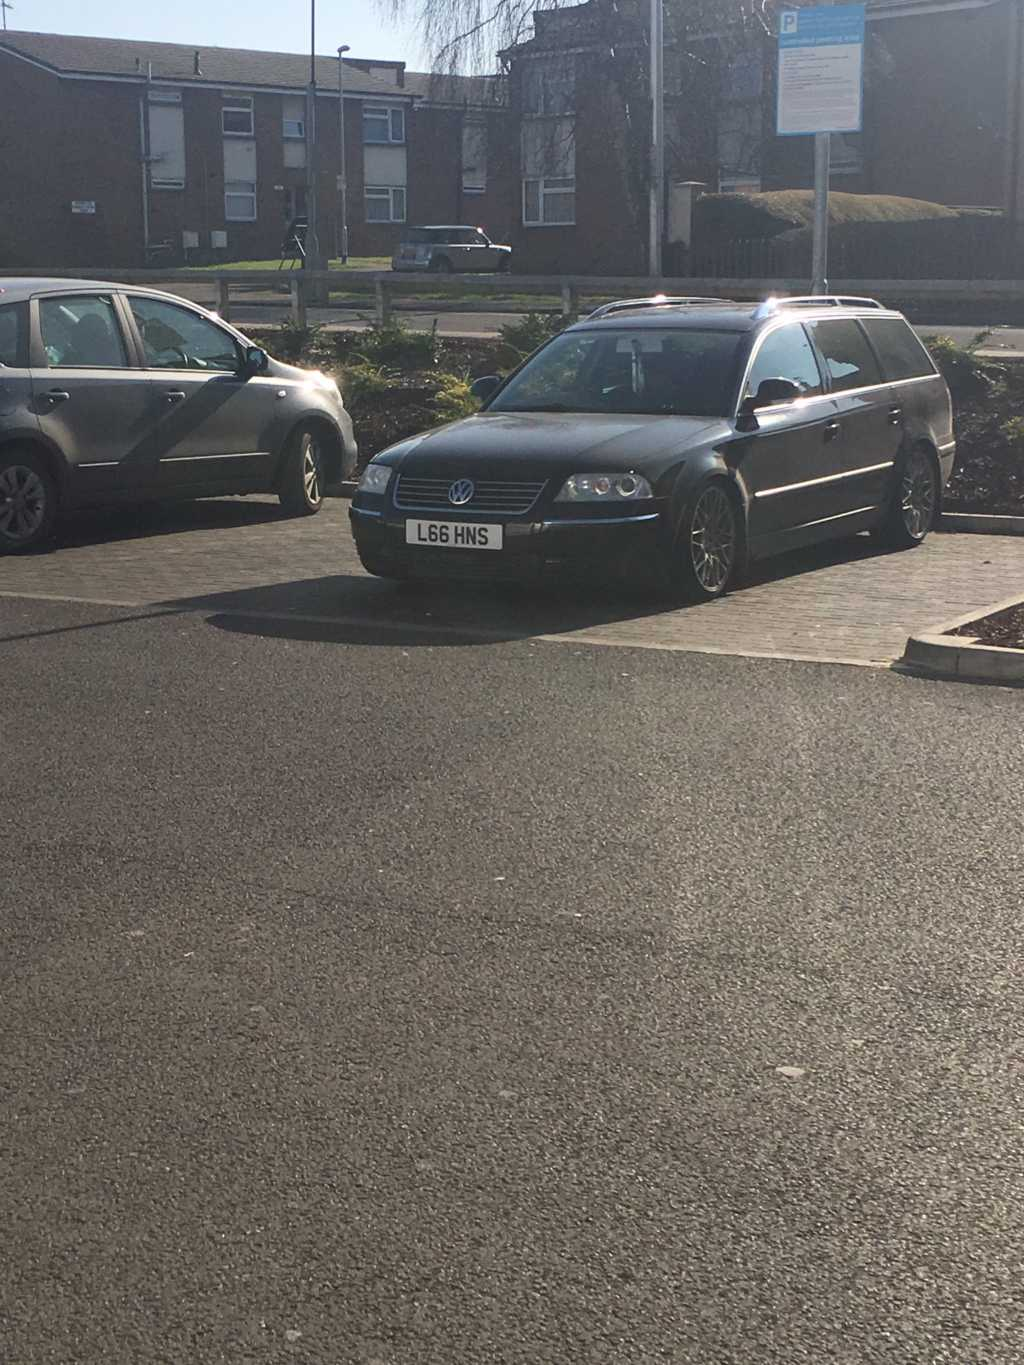 L66 HNS displaying Inconsiderate Parking